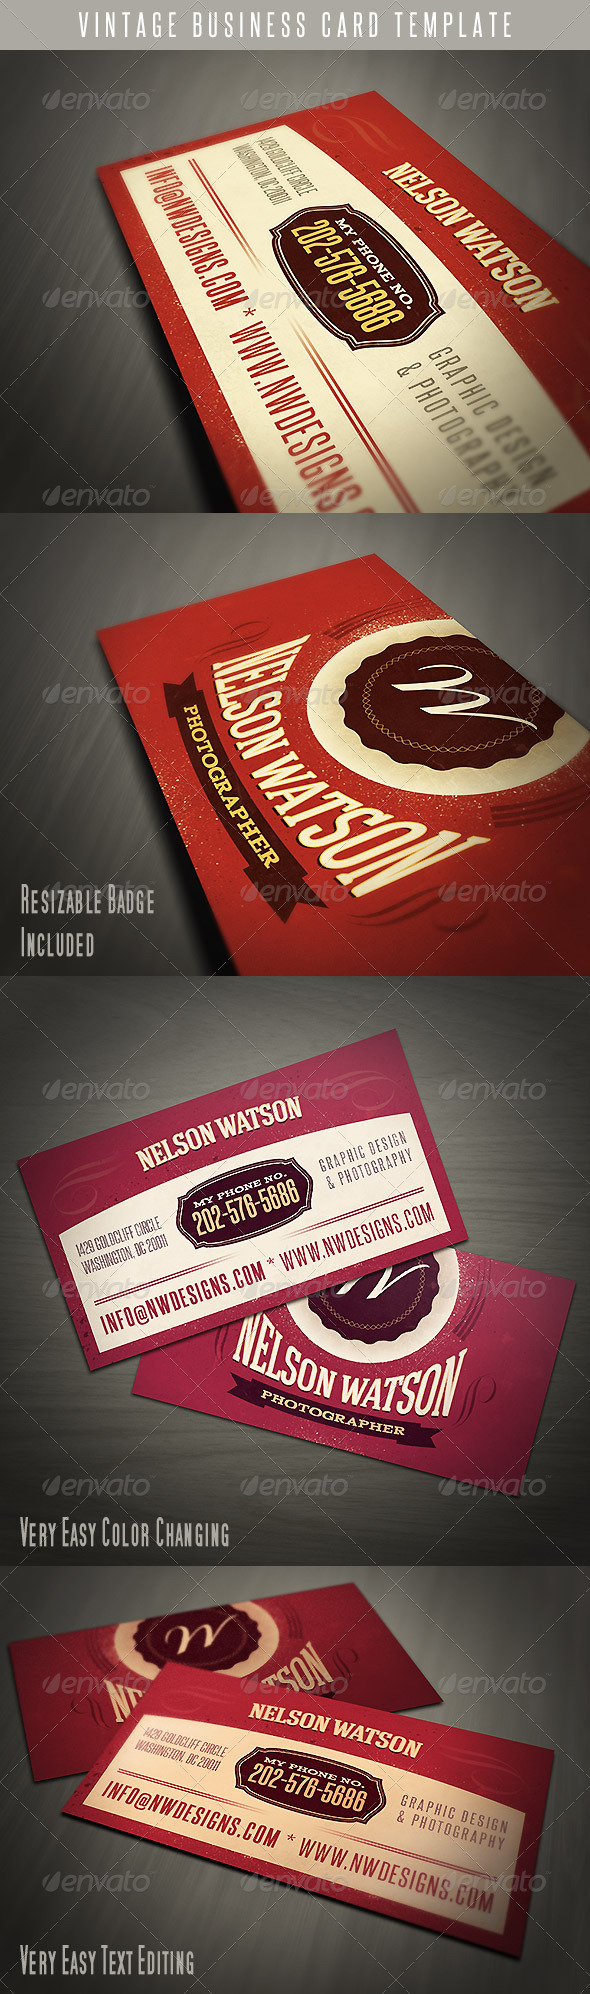 Vintage business card template by vilord graphicriver vintage business card template retrovintage business cards accmission Image collections